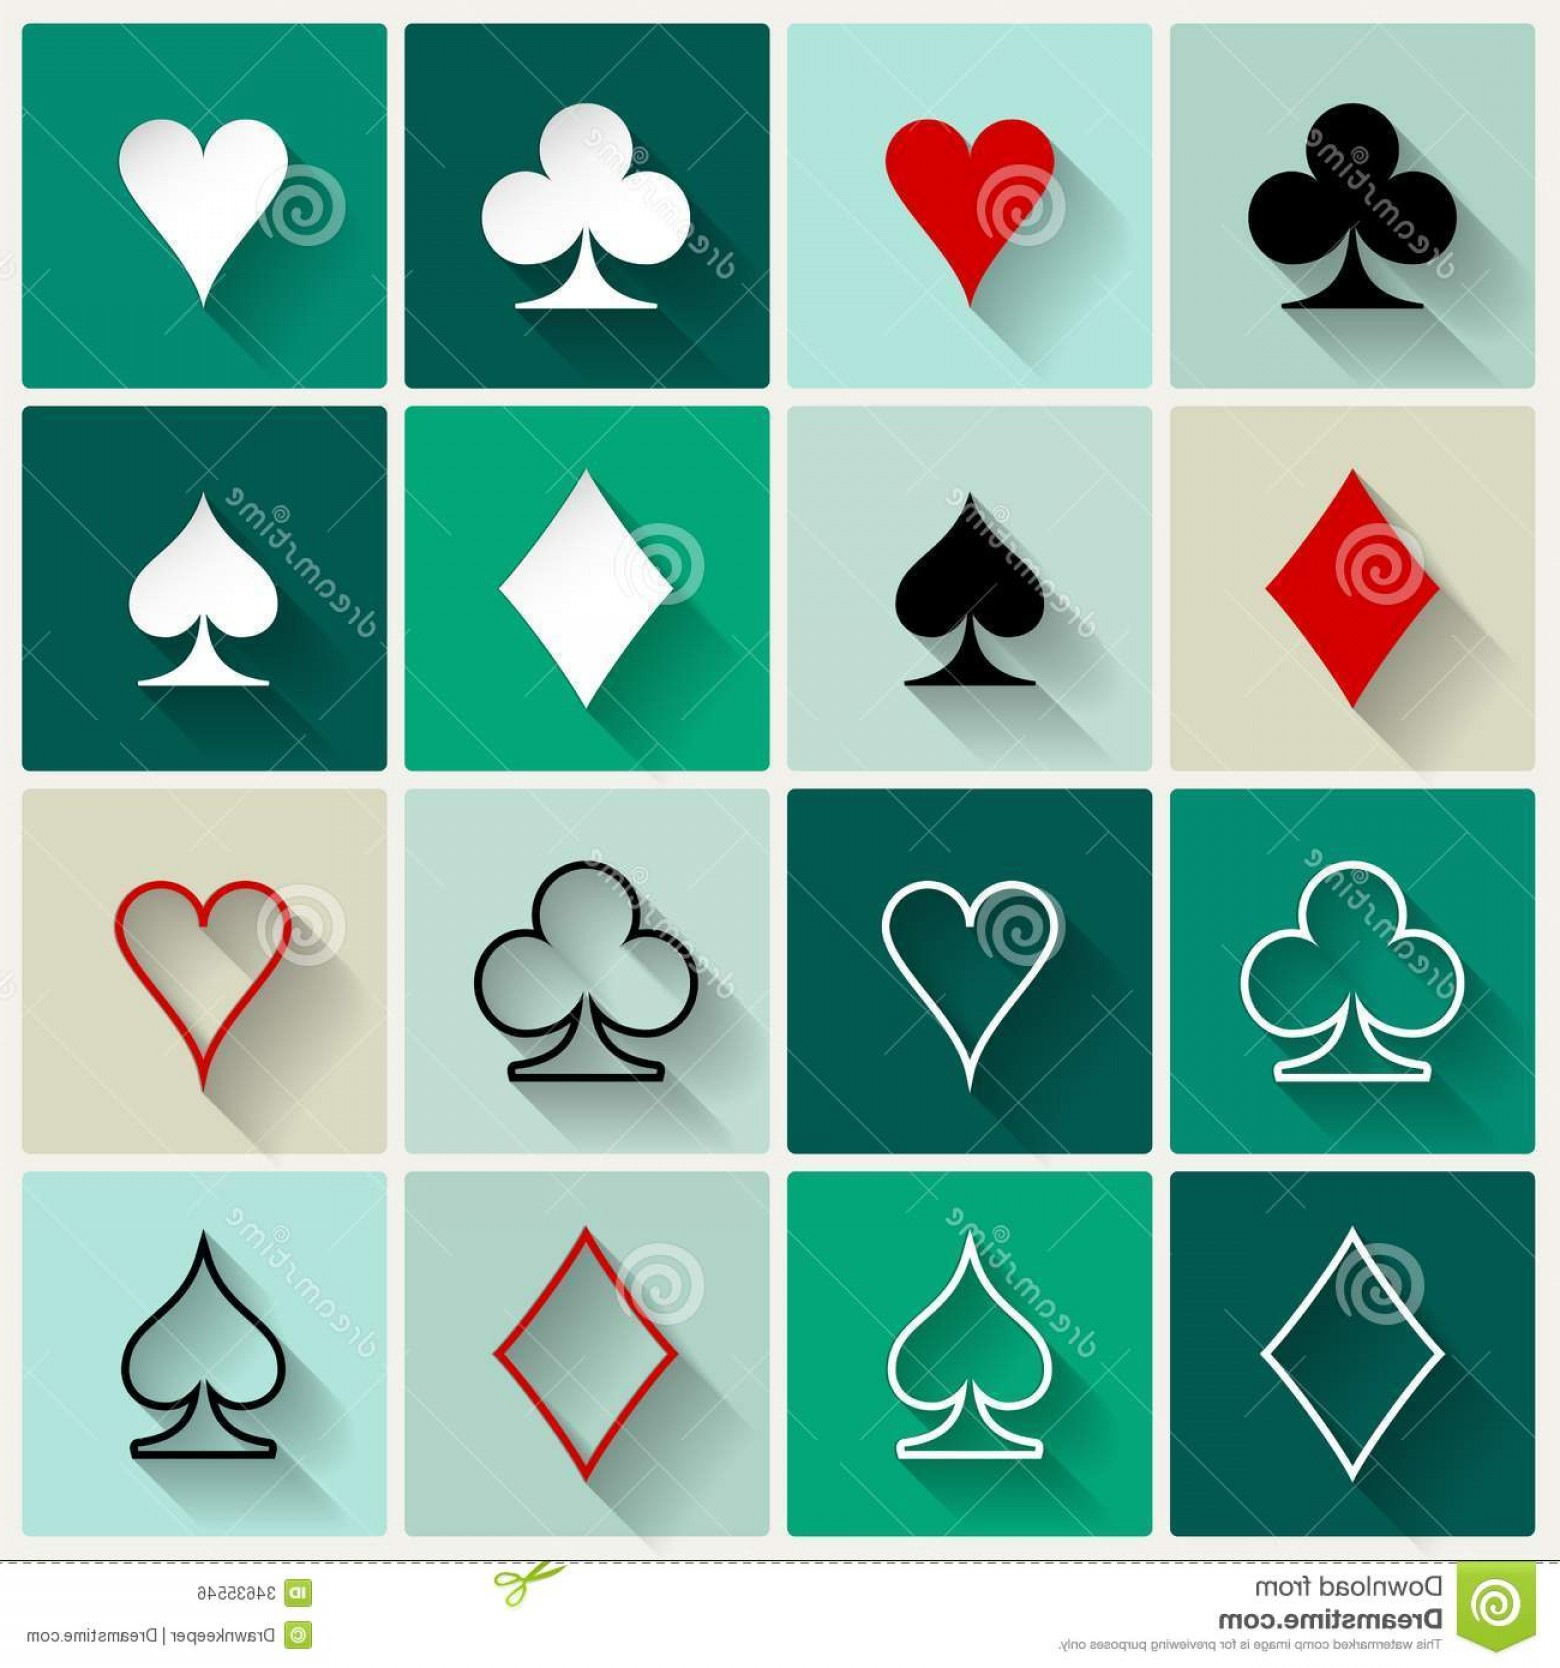 Card Suits Vector Outlines: Royalty Free Stock Image Vector Flat Card Suit Icons Icon Set Four Base Gambling Symbols Web Mobile Design Image